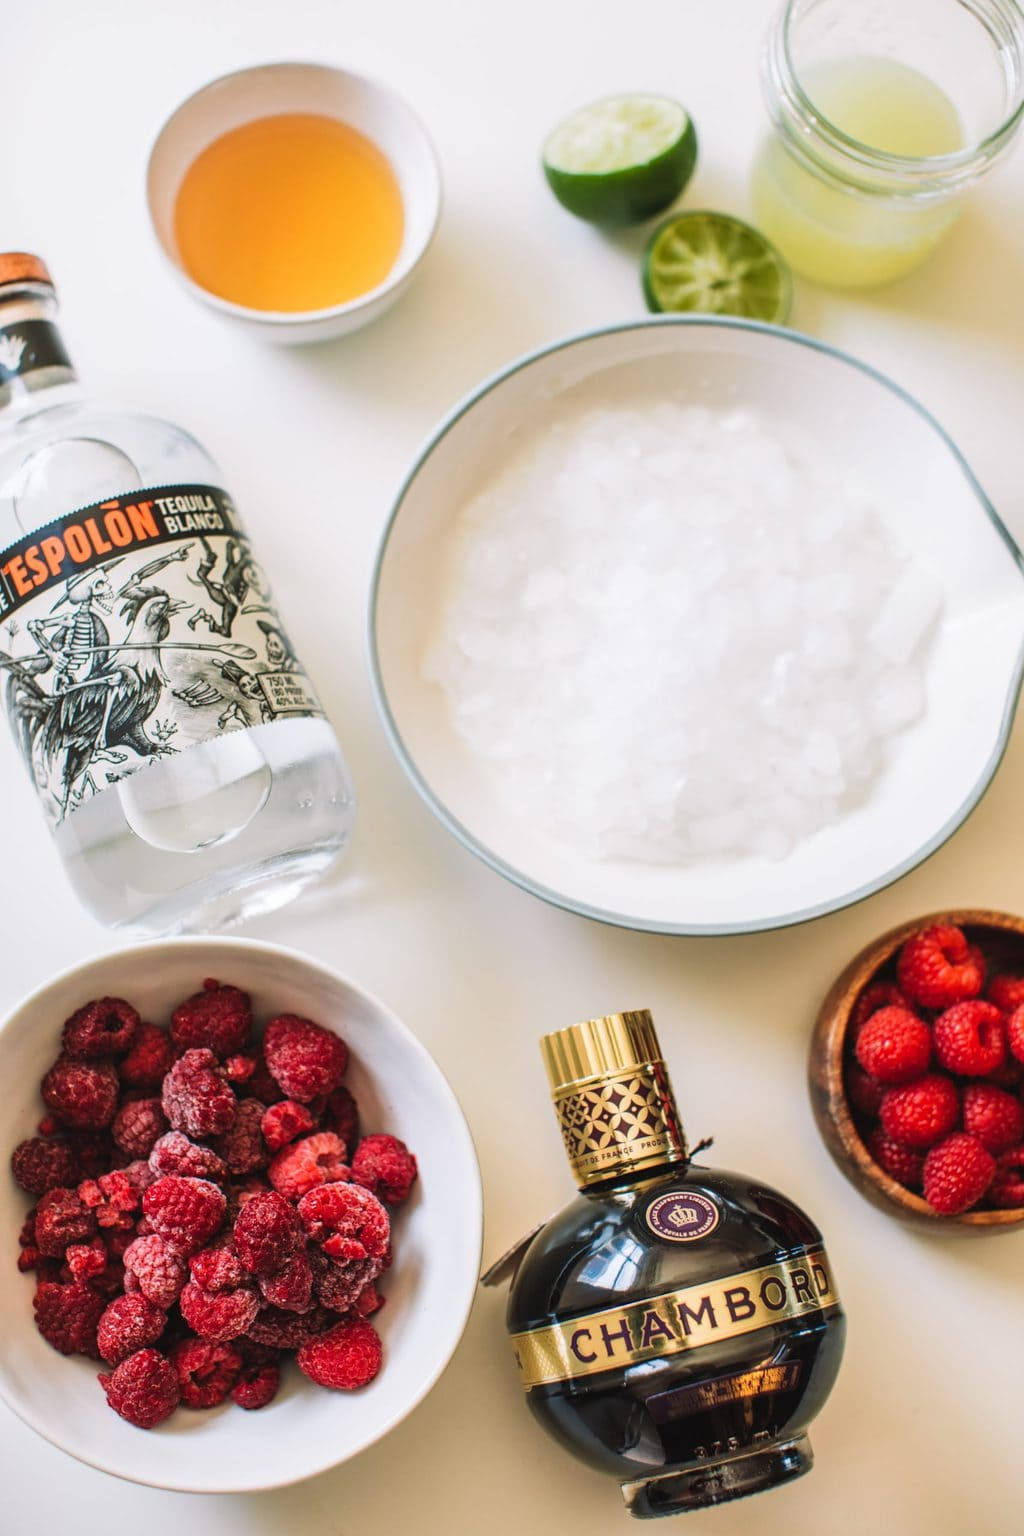 Silver tequila bottle, agave, frozen raspberries, ice, lime juice, chambord and fresh raspberries.